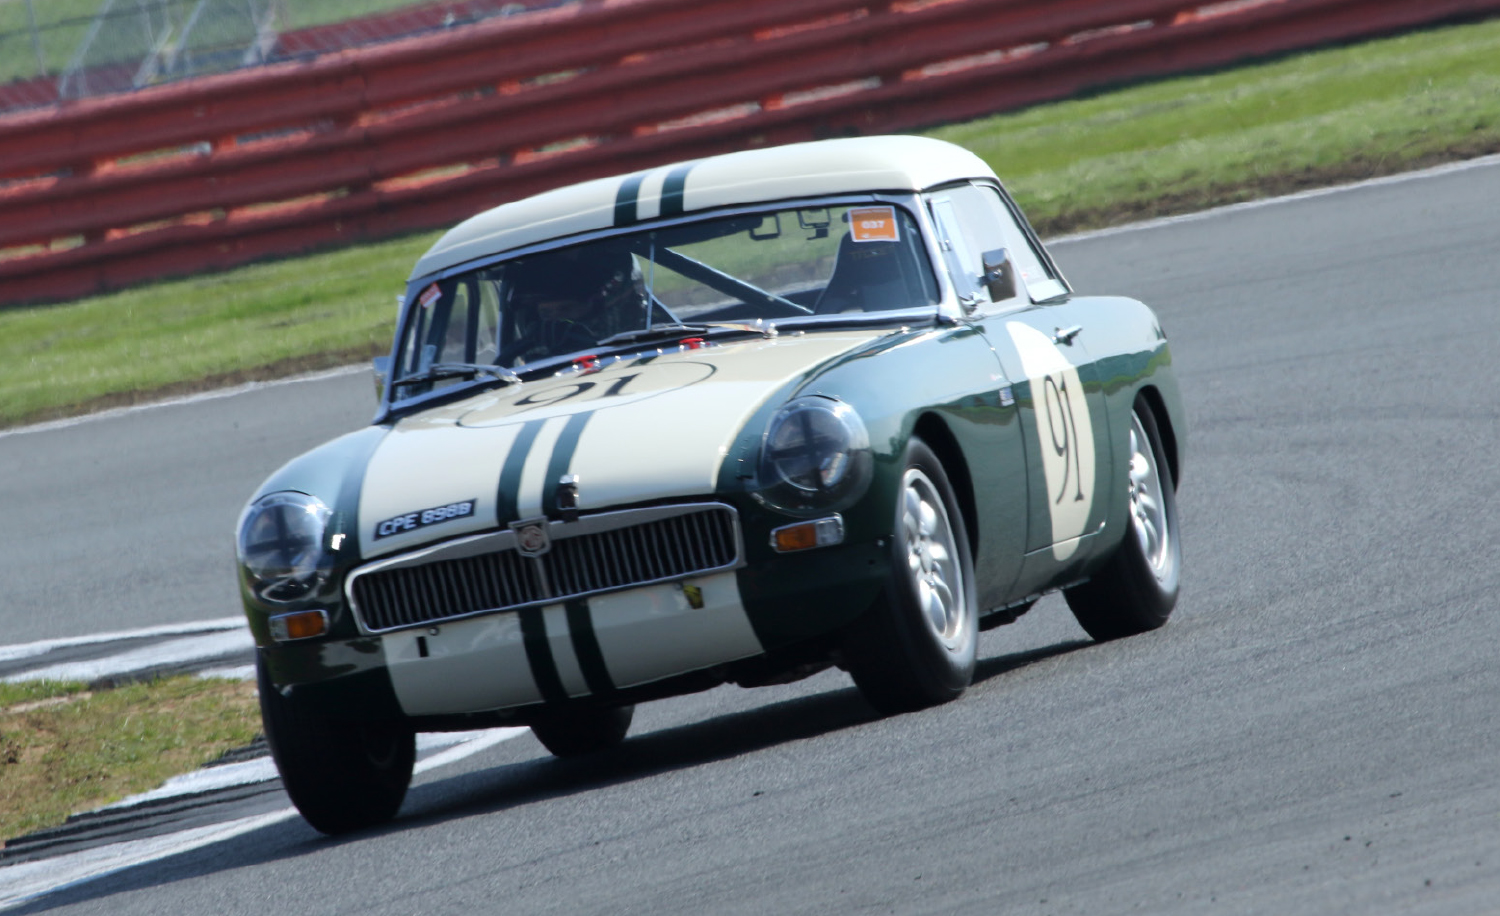 Weekend 1 round-up: Silverstone National Circuit